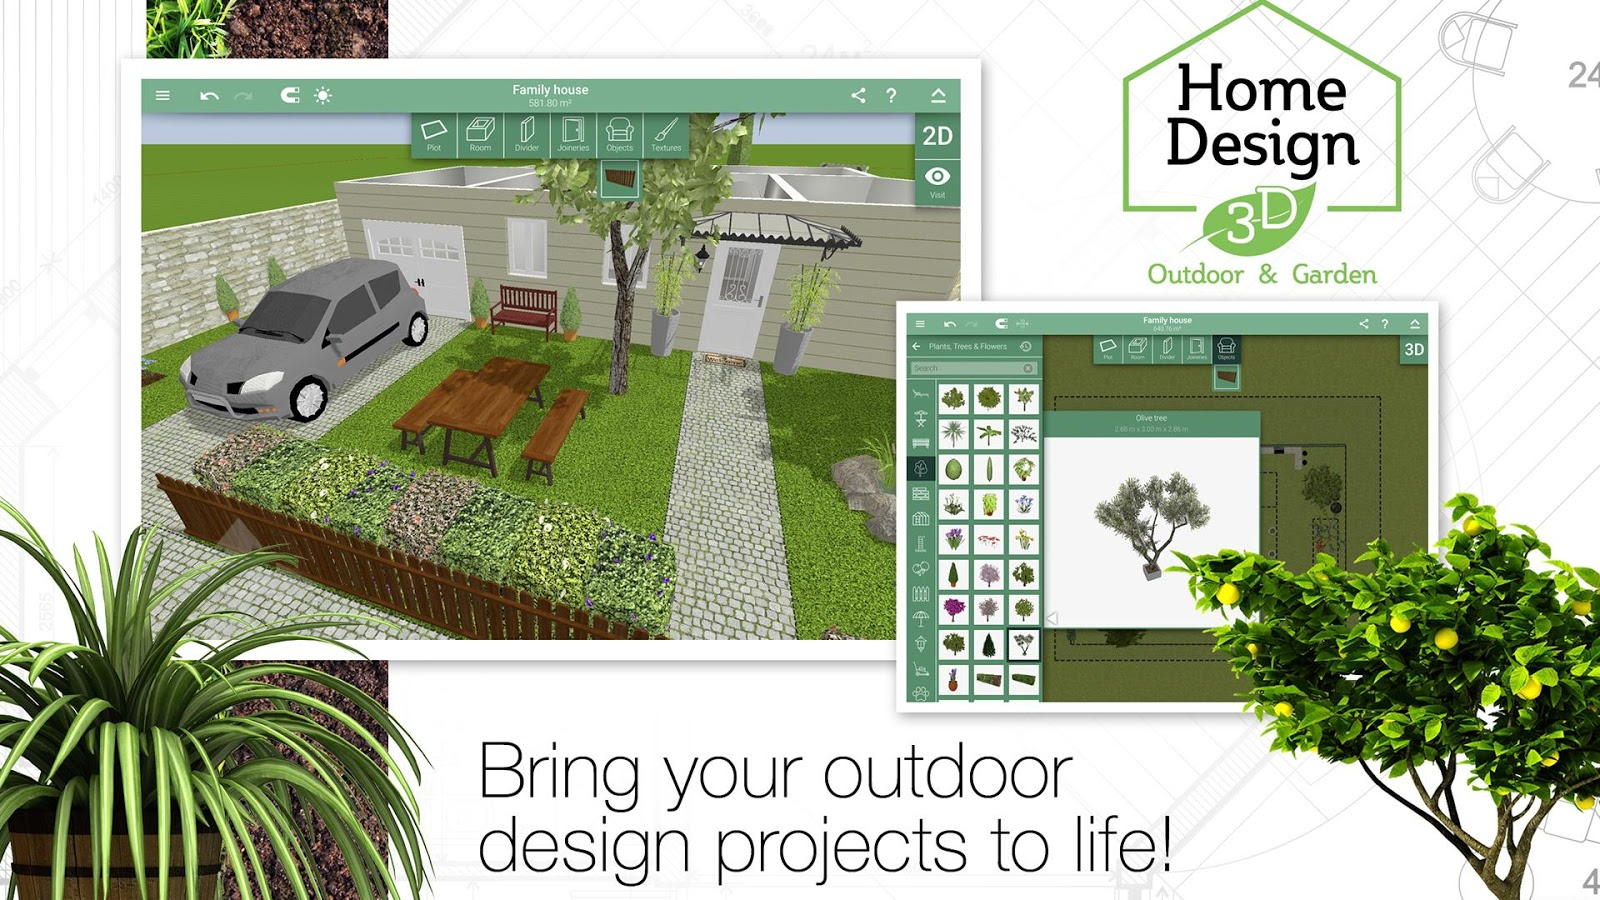 Home design 3d outdoor garden android apps on google play for Garden in house designs